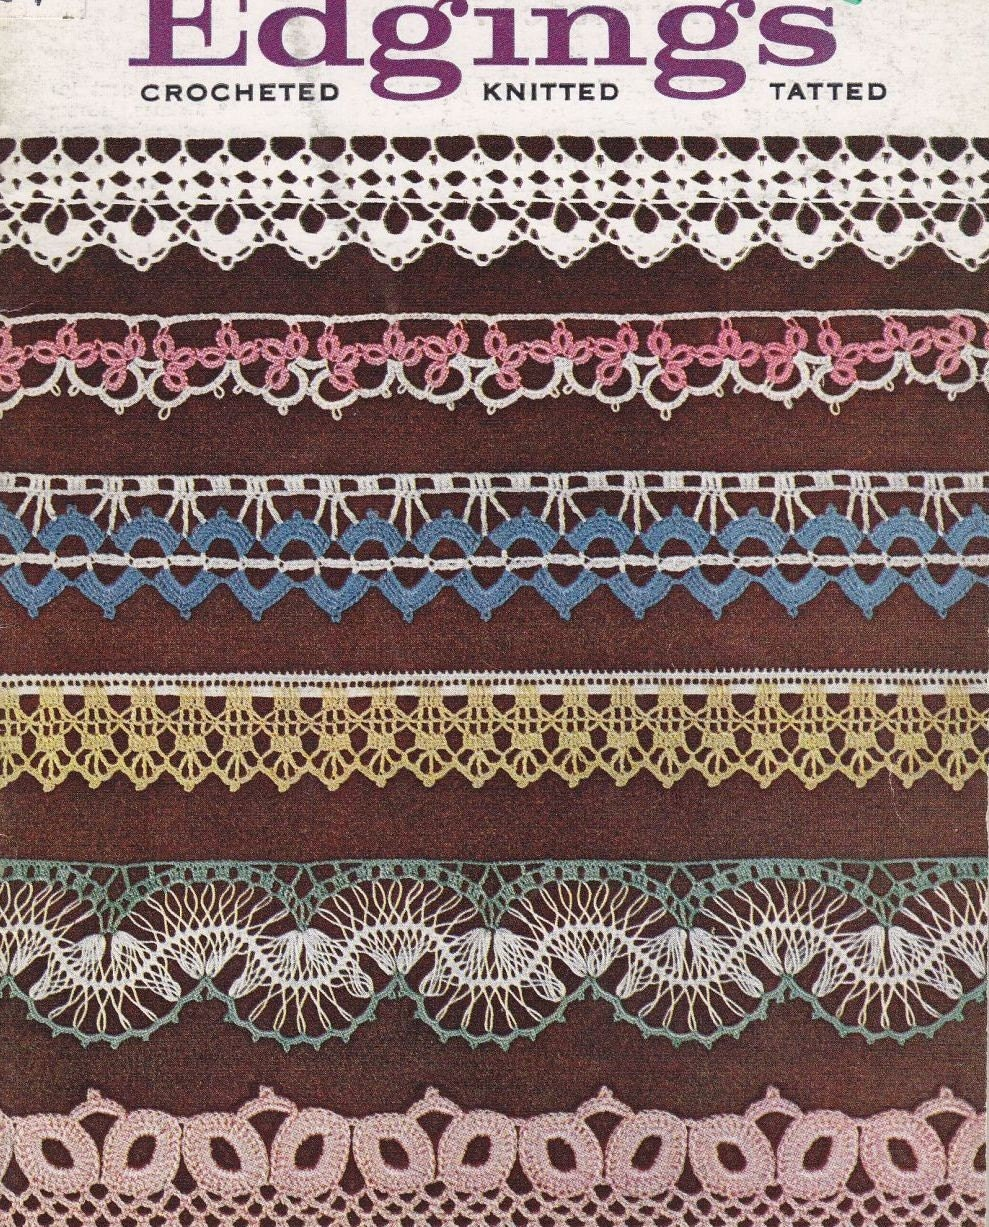 Crocheted Handkerchief Edgings - 194 patterns archived